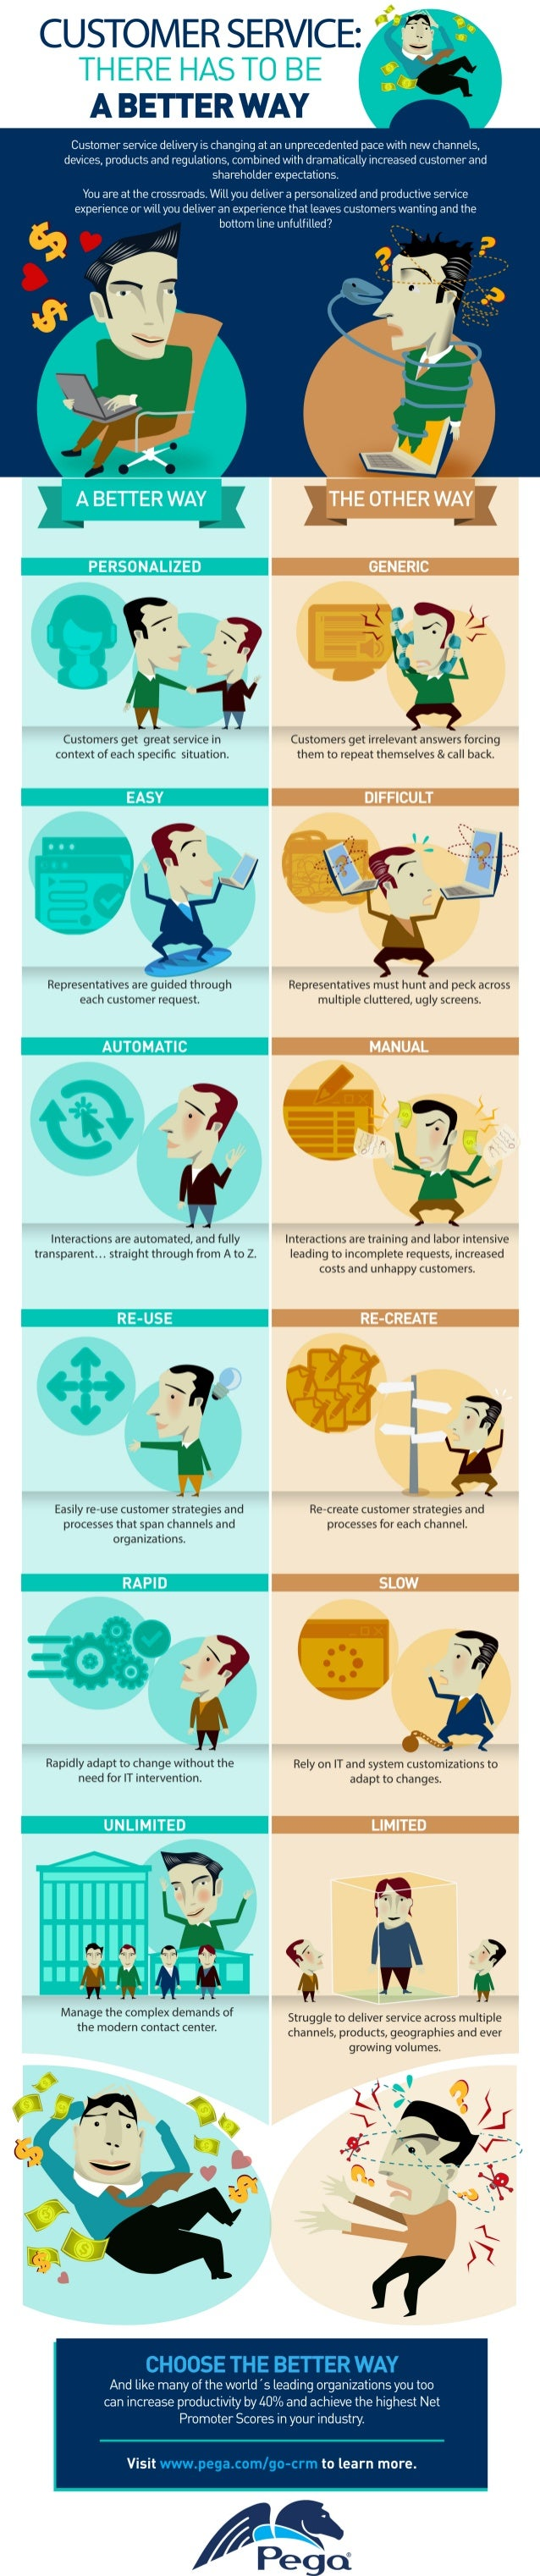 Customer Service: There Has to be a Better Way Infographic